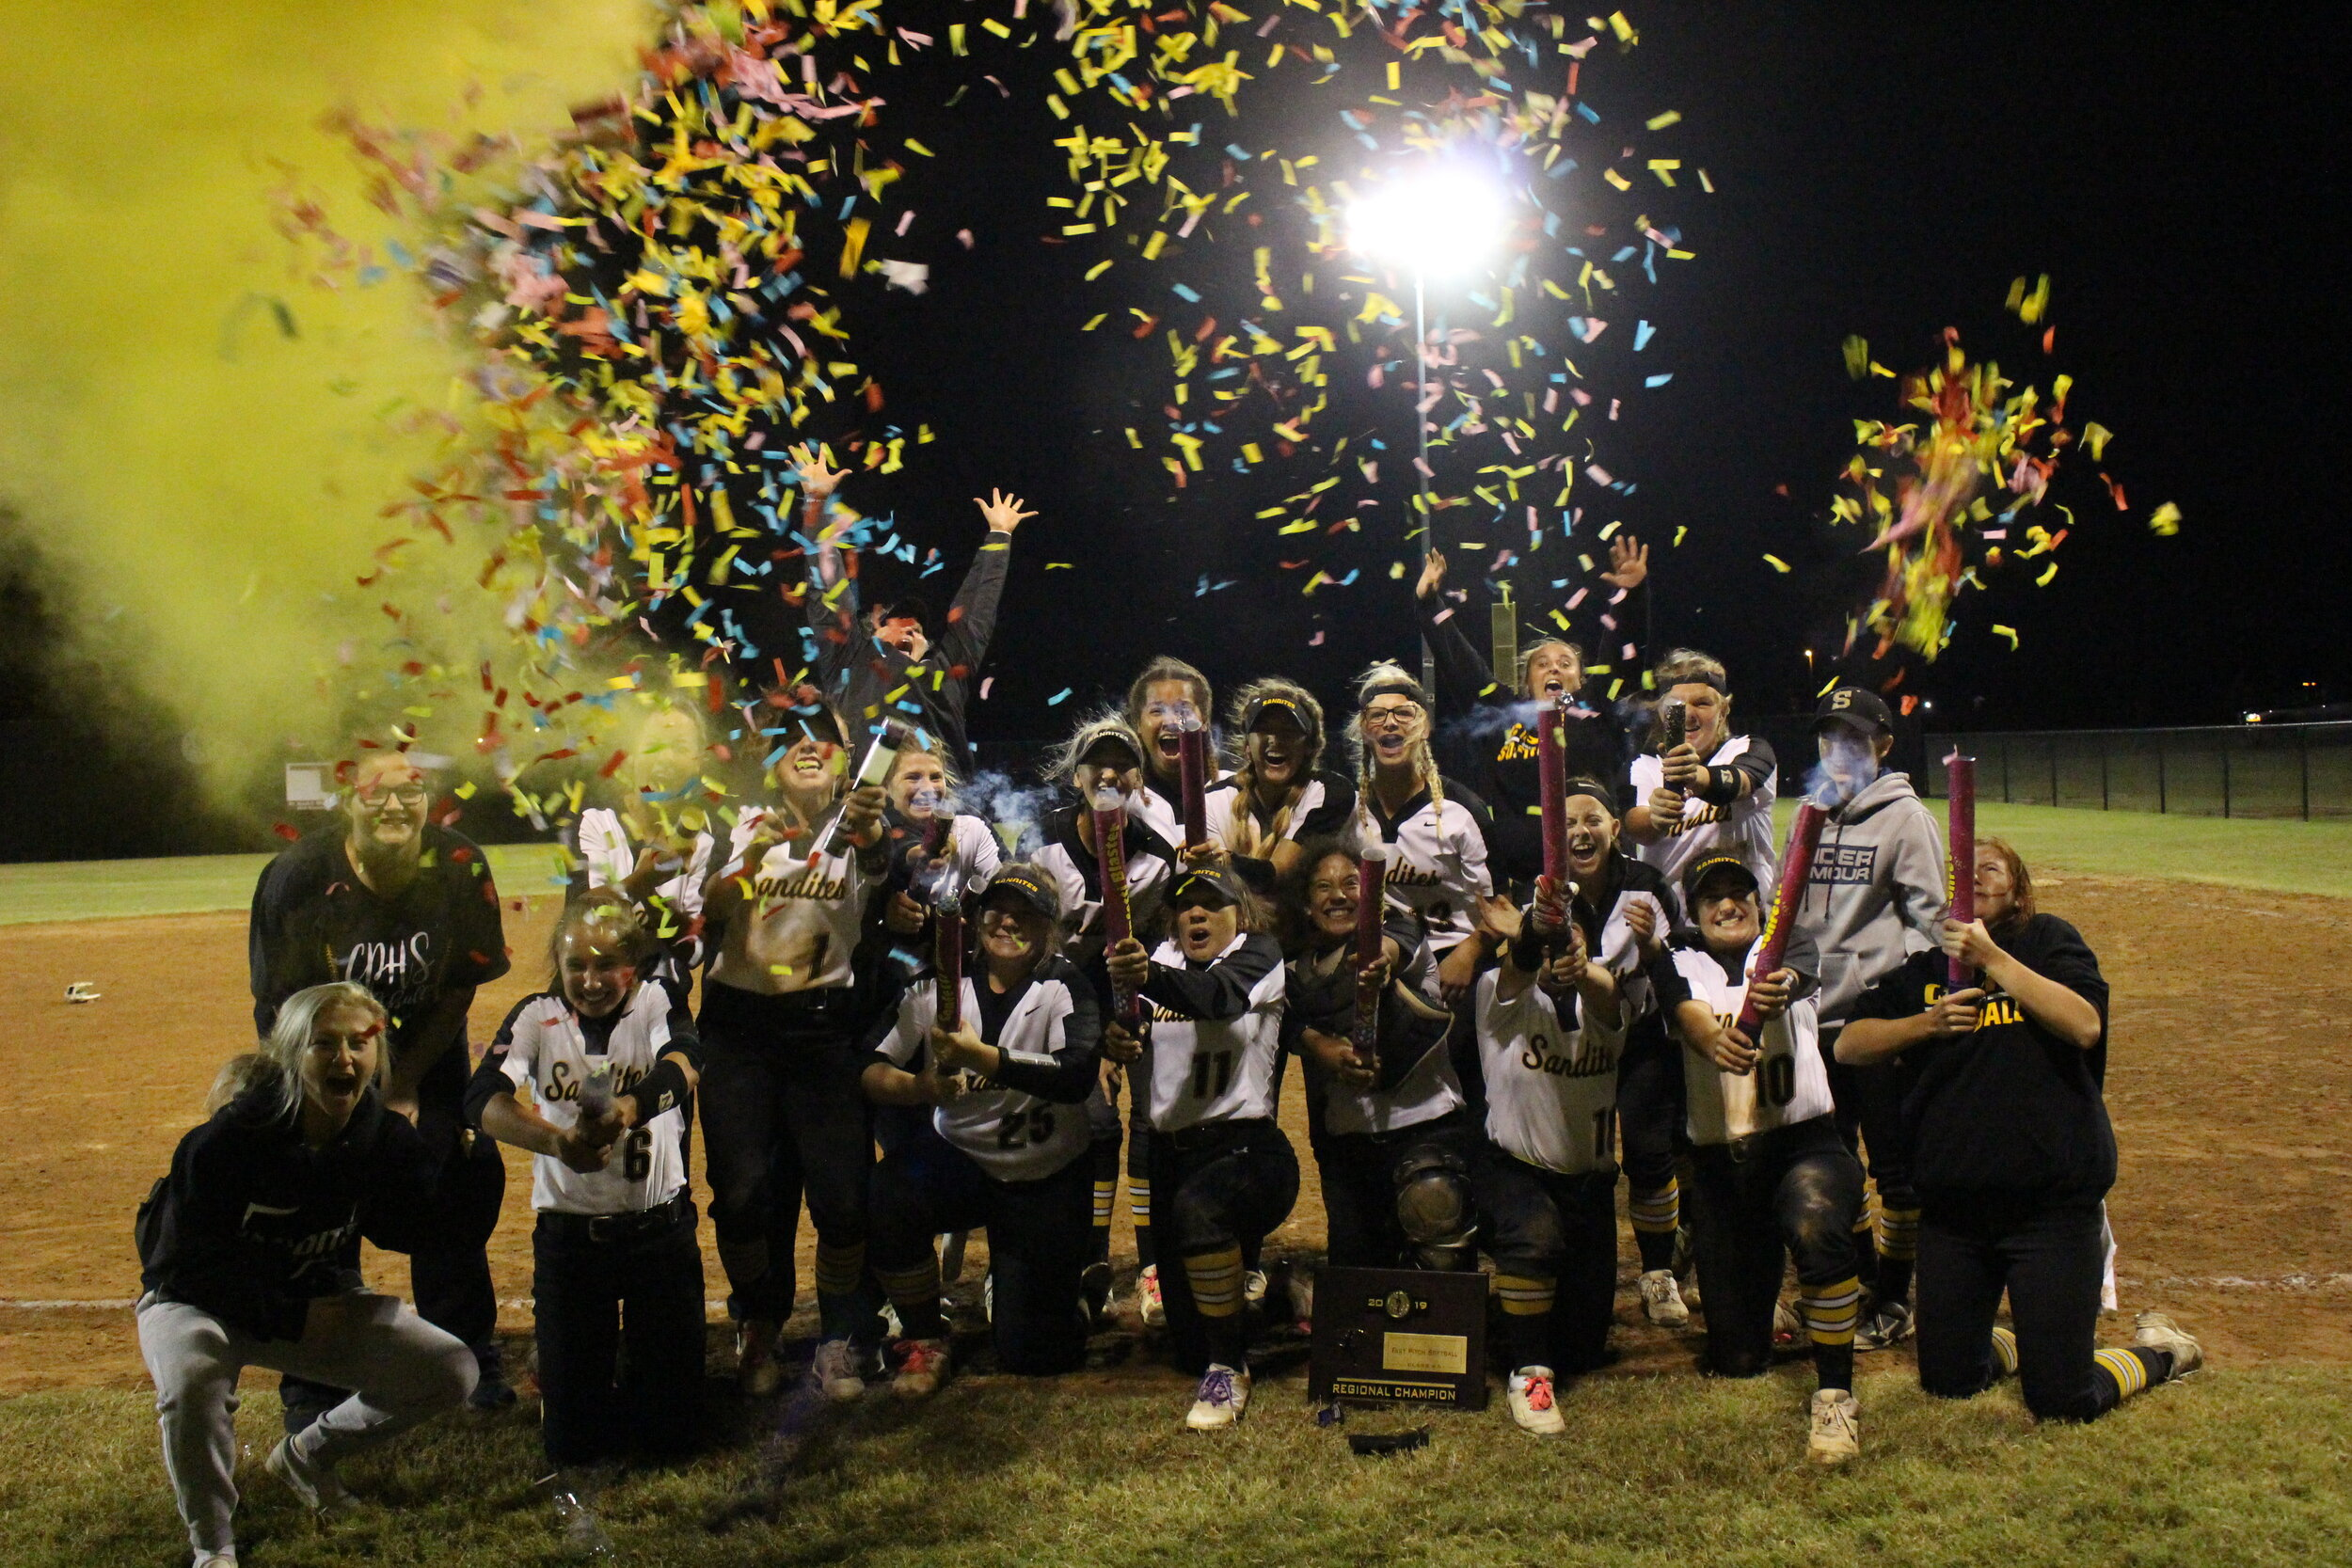 The 2019 Fast Pitch Softball Team won the Sandites' fifth-straight Regional Title.